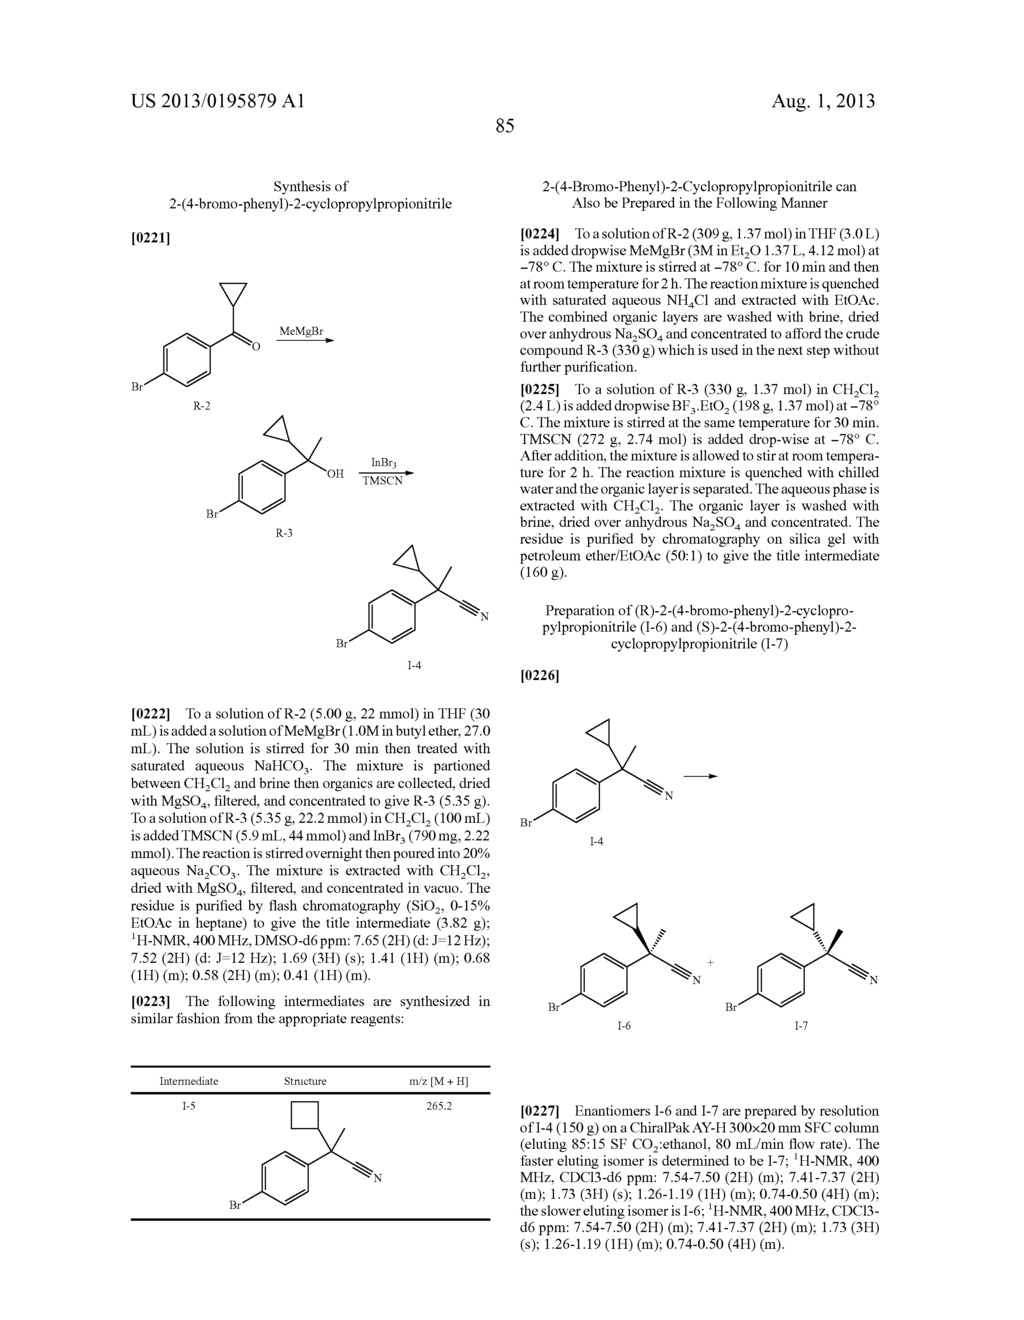 OXADIAZOLE INHIBITORS OF LEUKOTRIENE PRODUCTION FOR COMBINATION THERAPY - diagram, schematic, and image 87